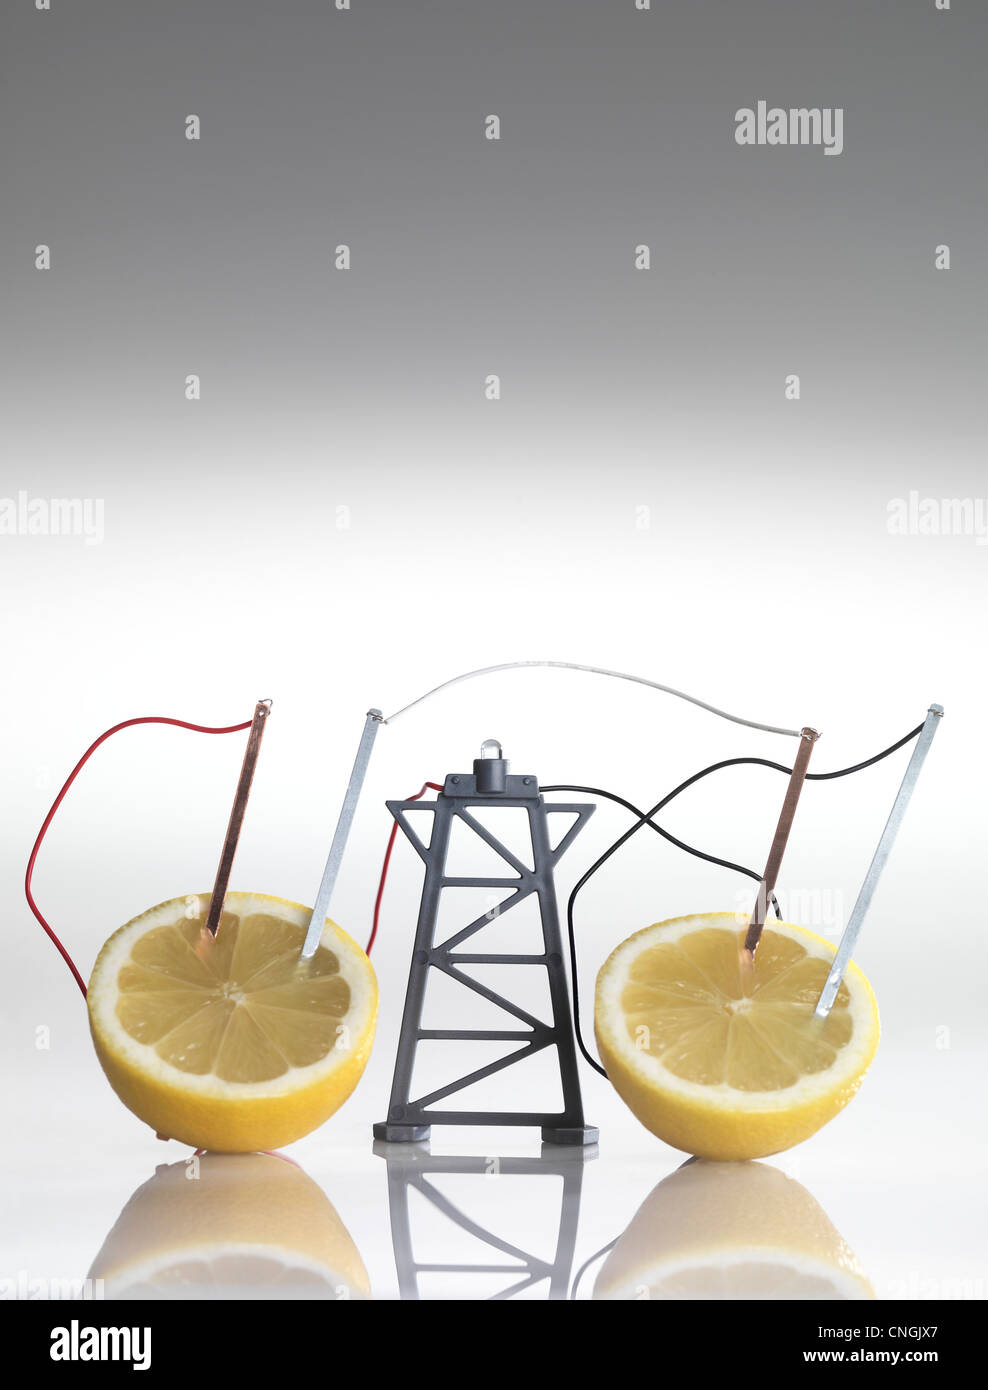 Electrical circuit with lemons - Stock Image